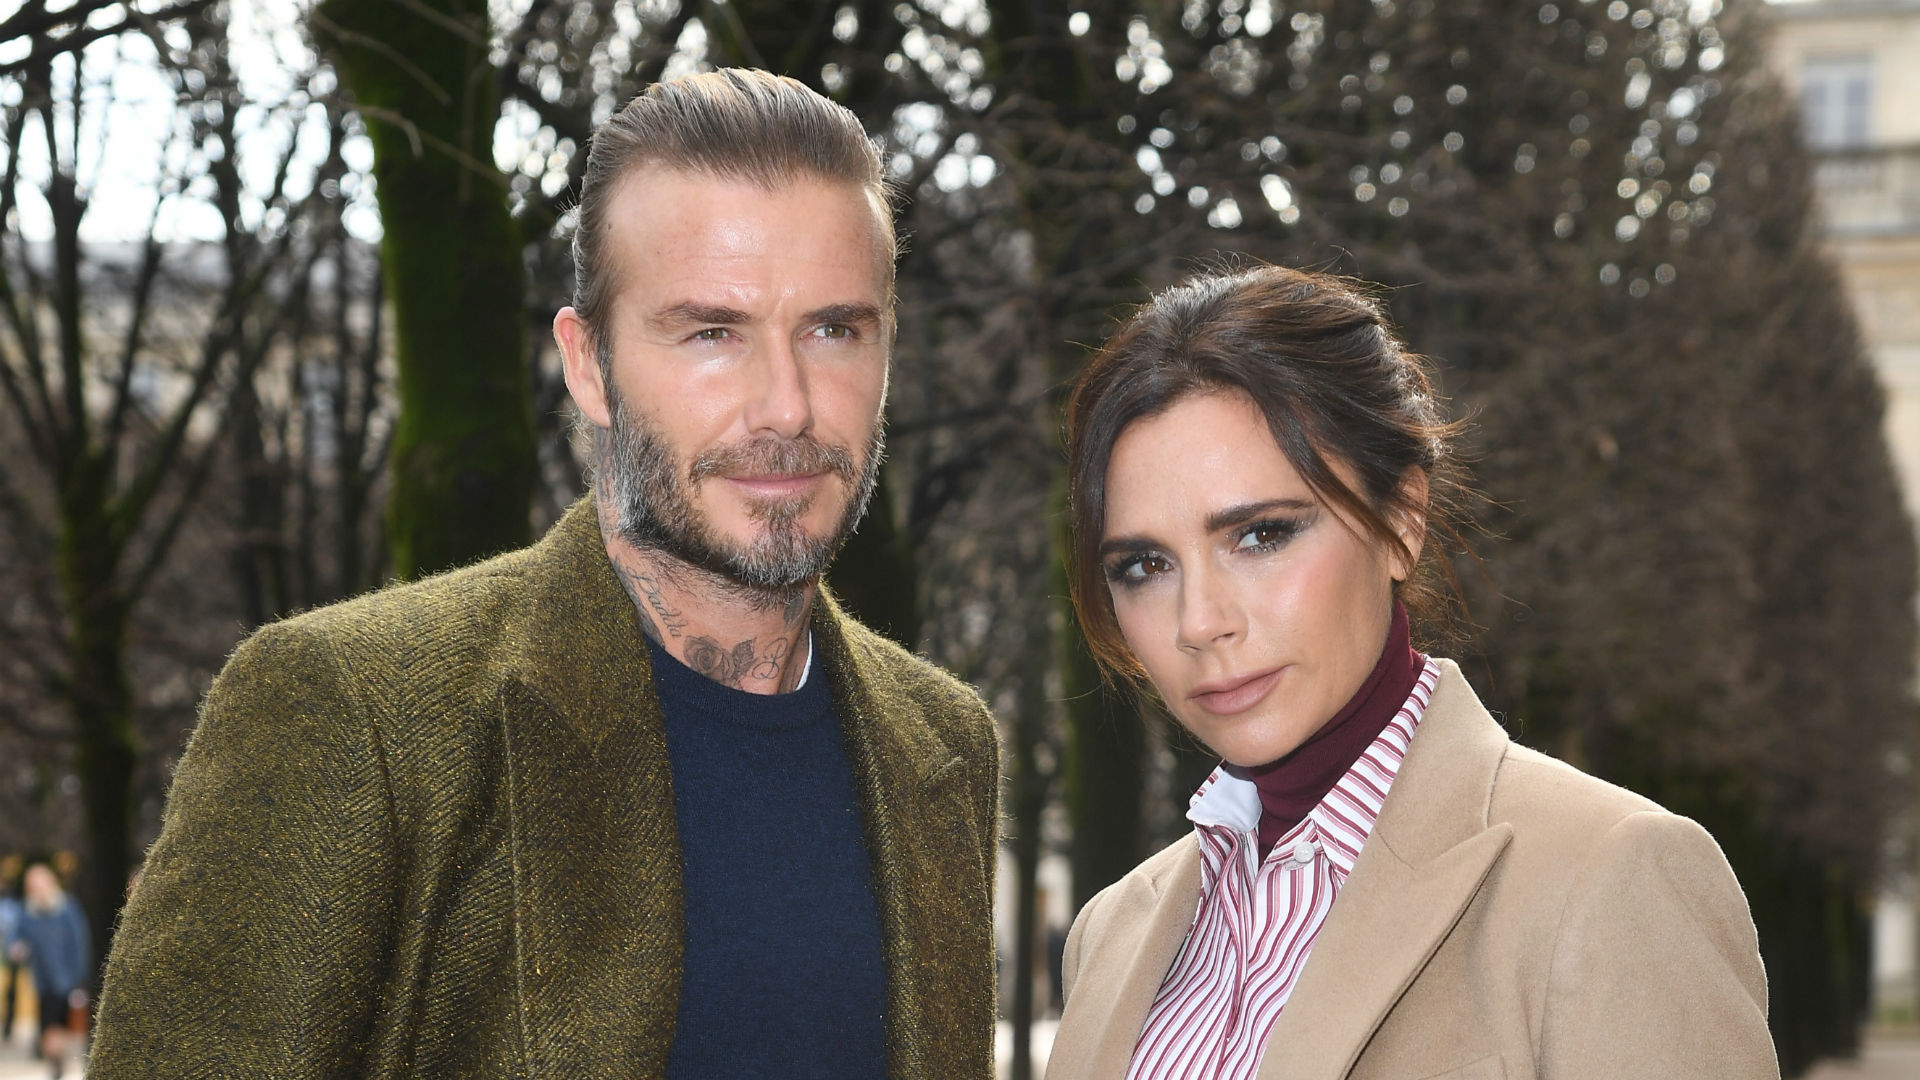 What Is David Beckham's Net Worth And What Endorsements